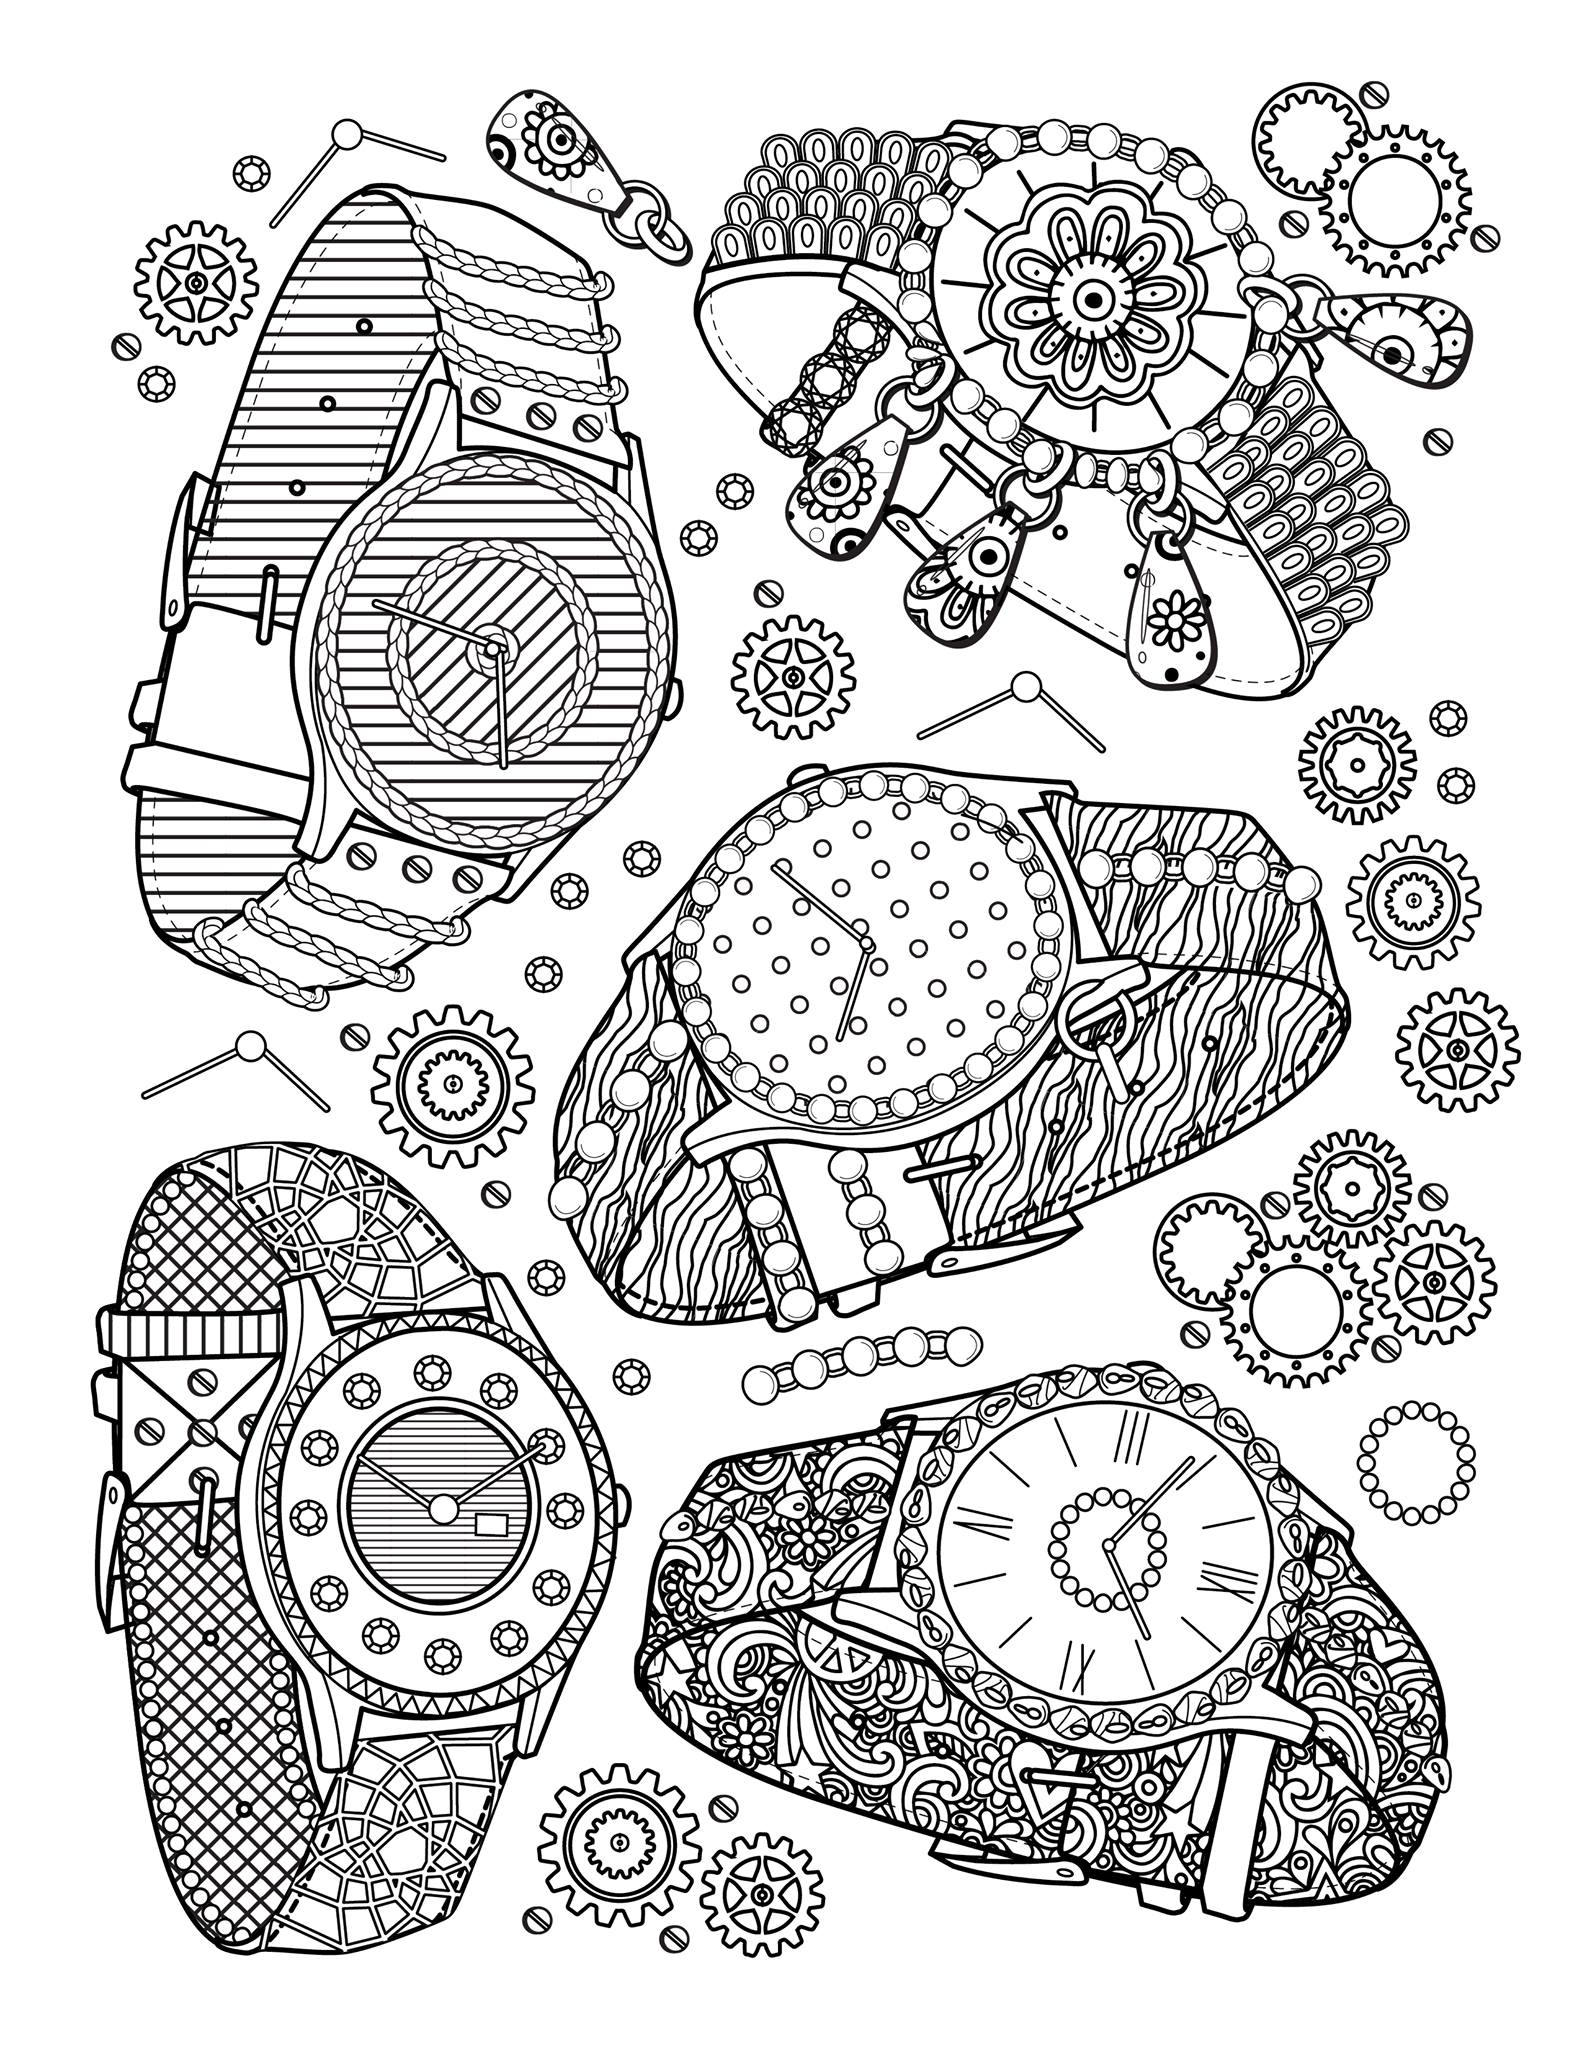 Book jewelry watches Fashion Adult Coloring Pages